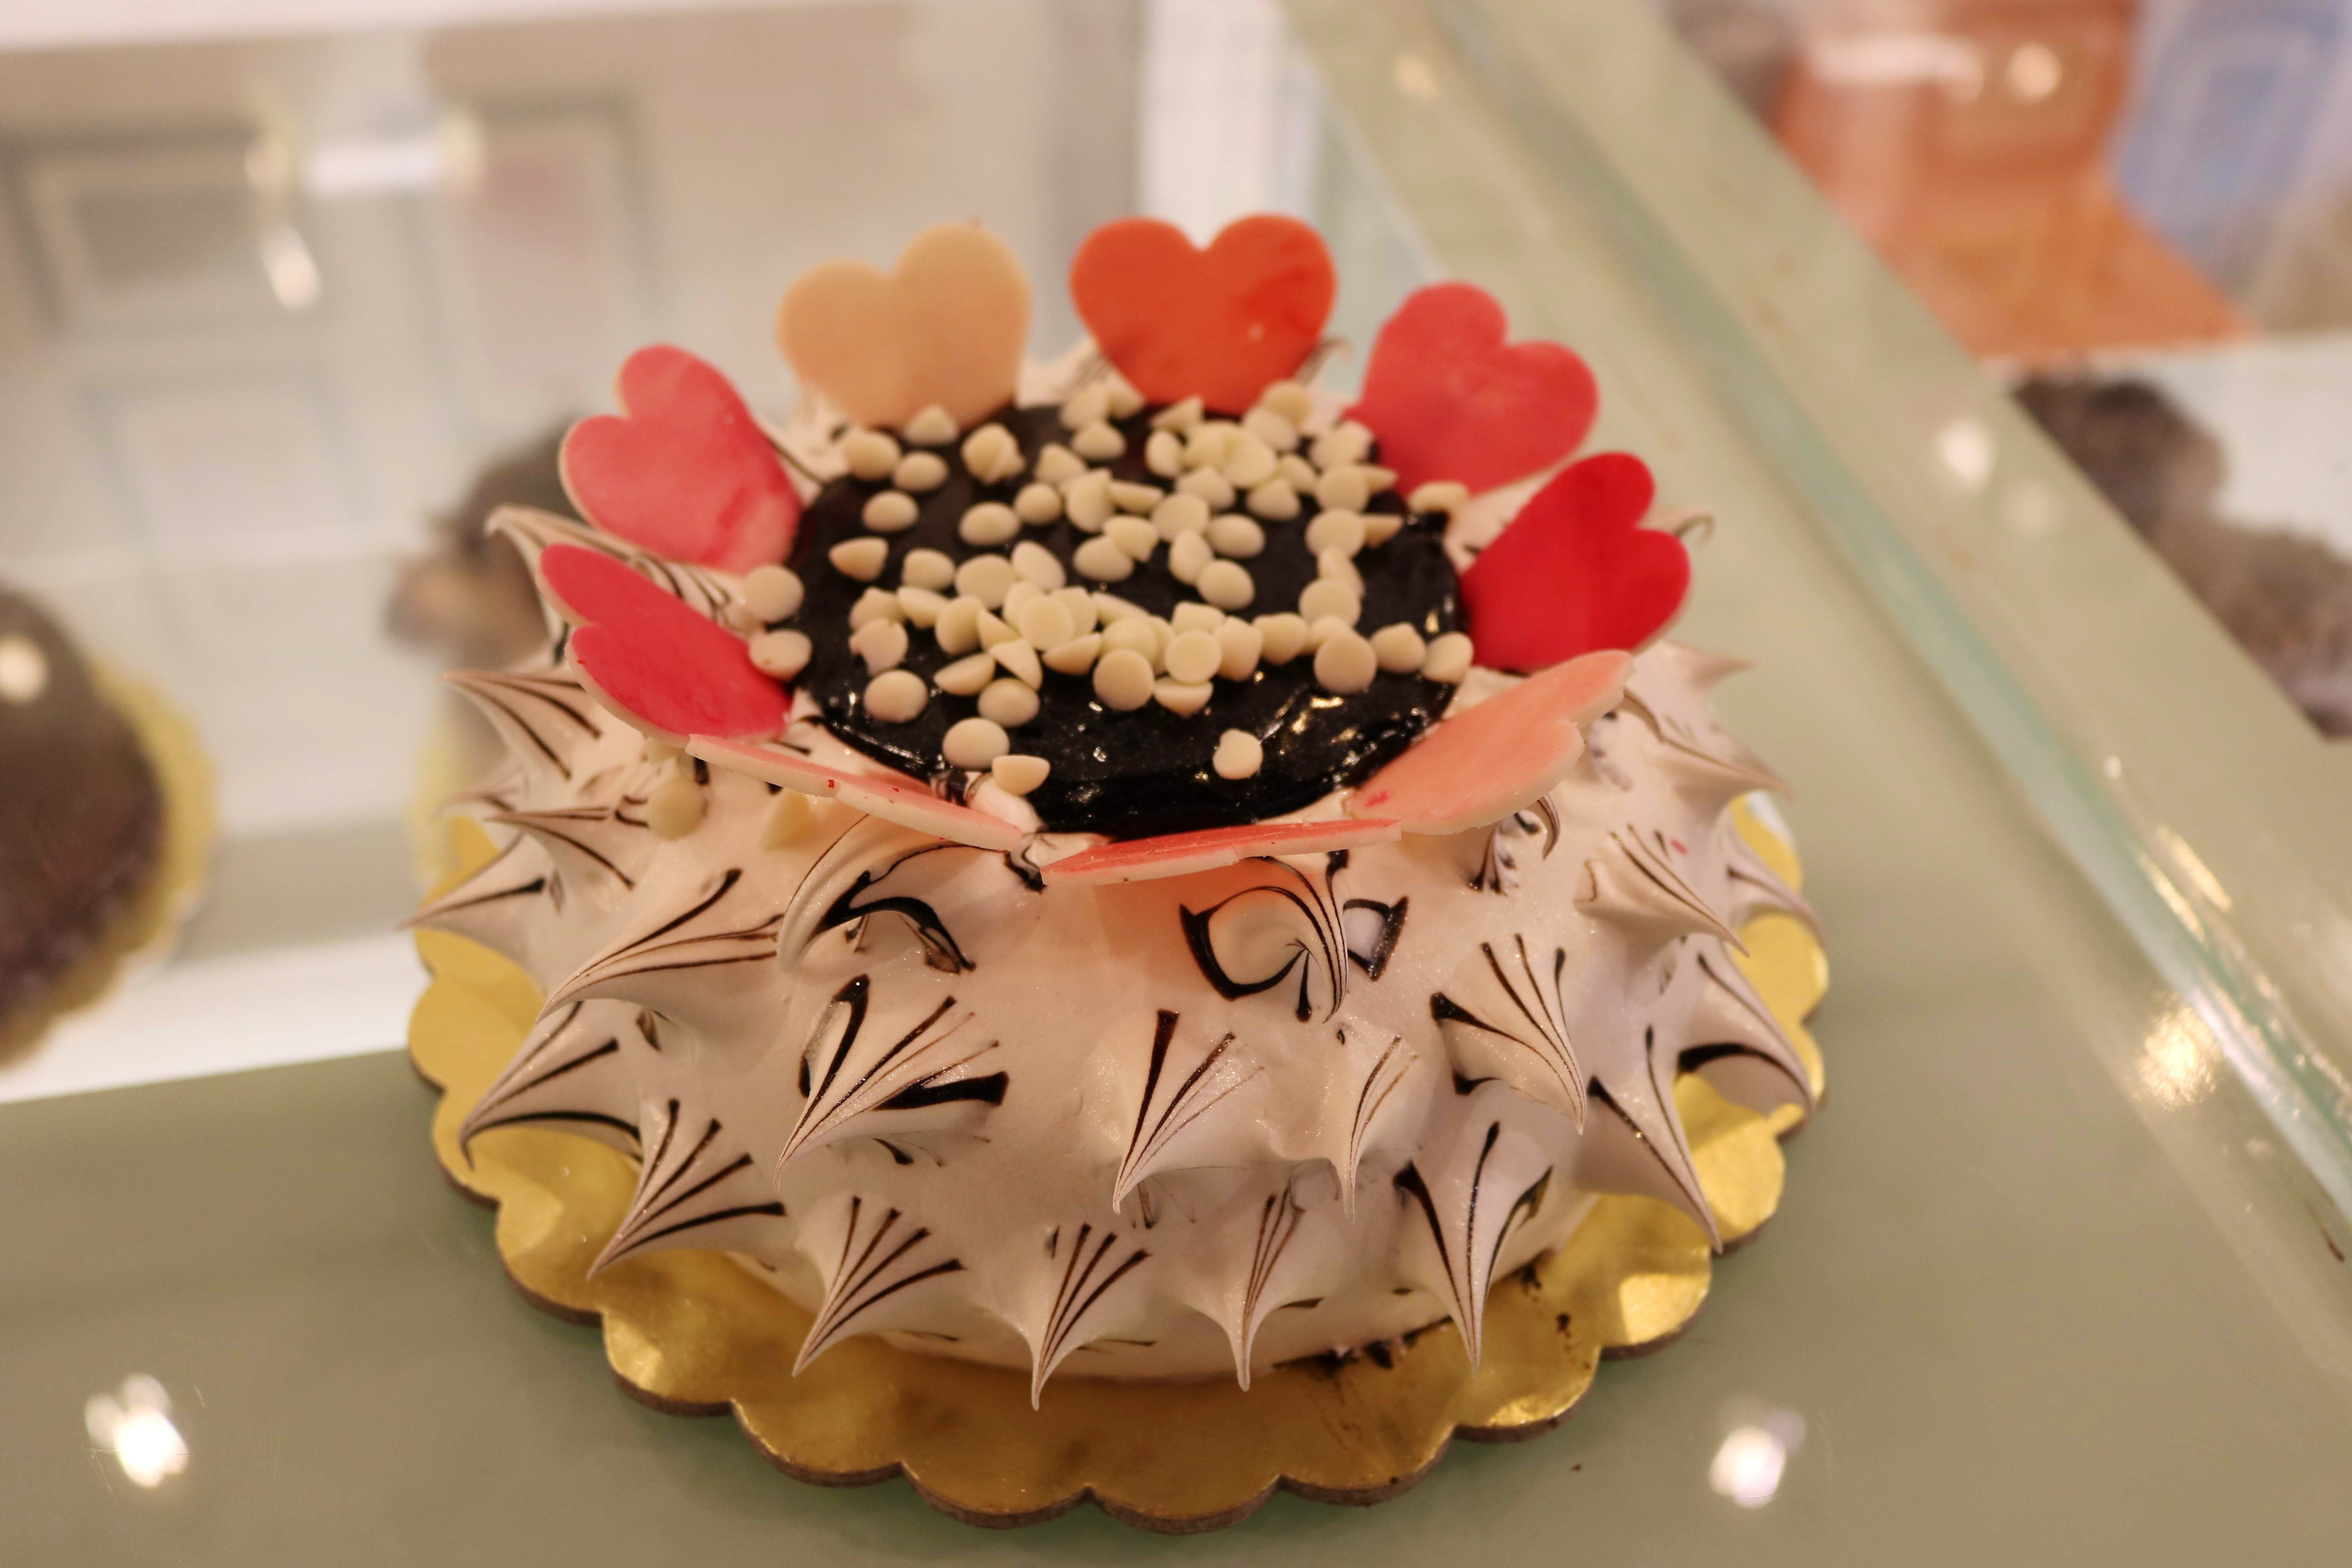 Food,Sweetness,Cuisine,Dessert,Dish,Pâtisserie,Ingredient,Torte,Buttercream,Baking